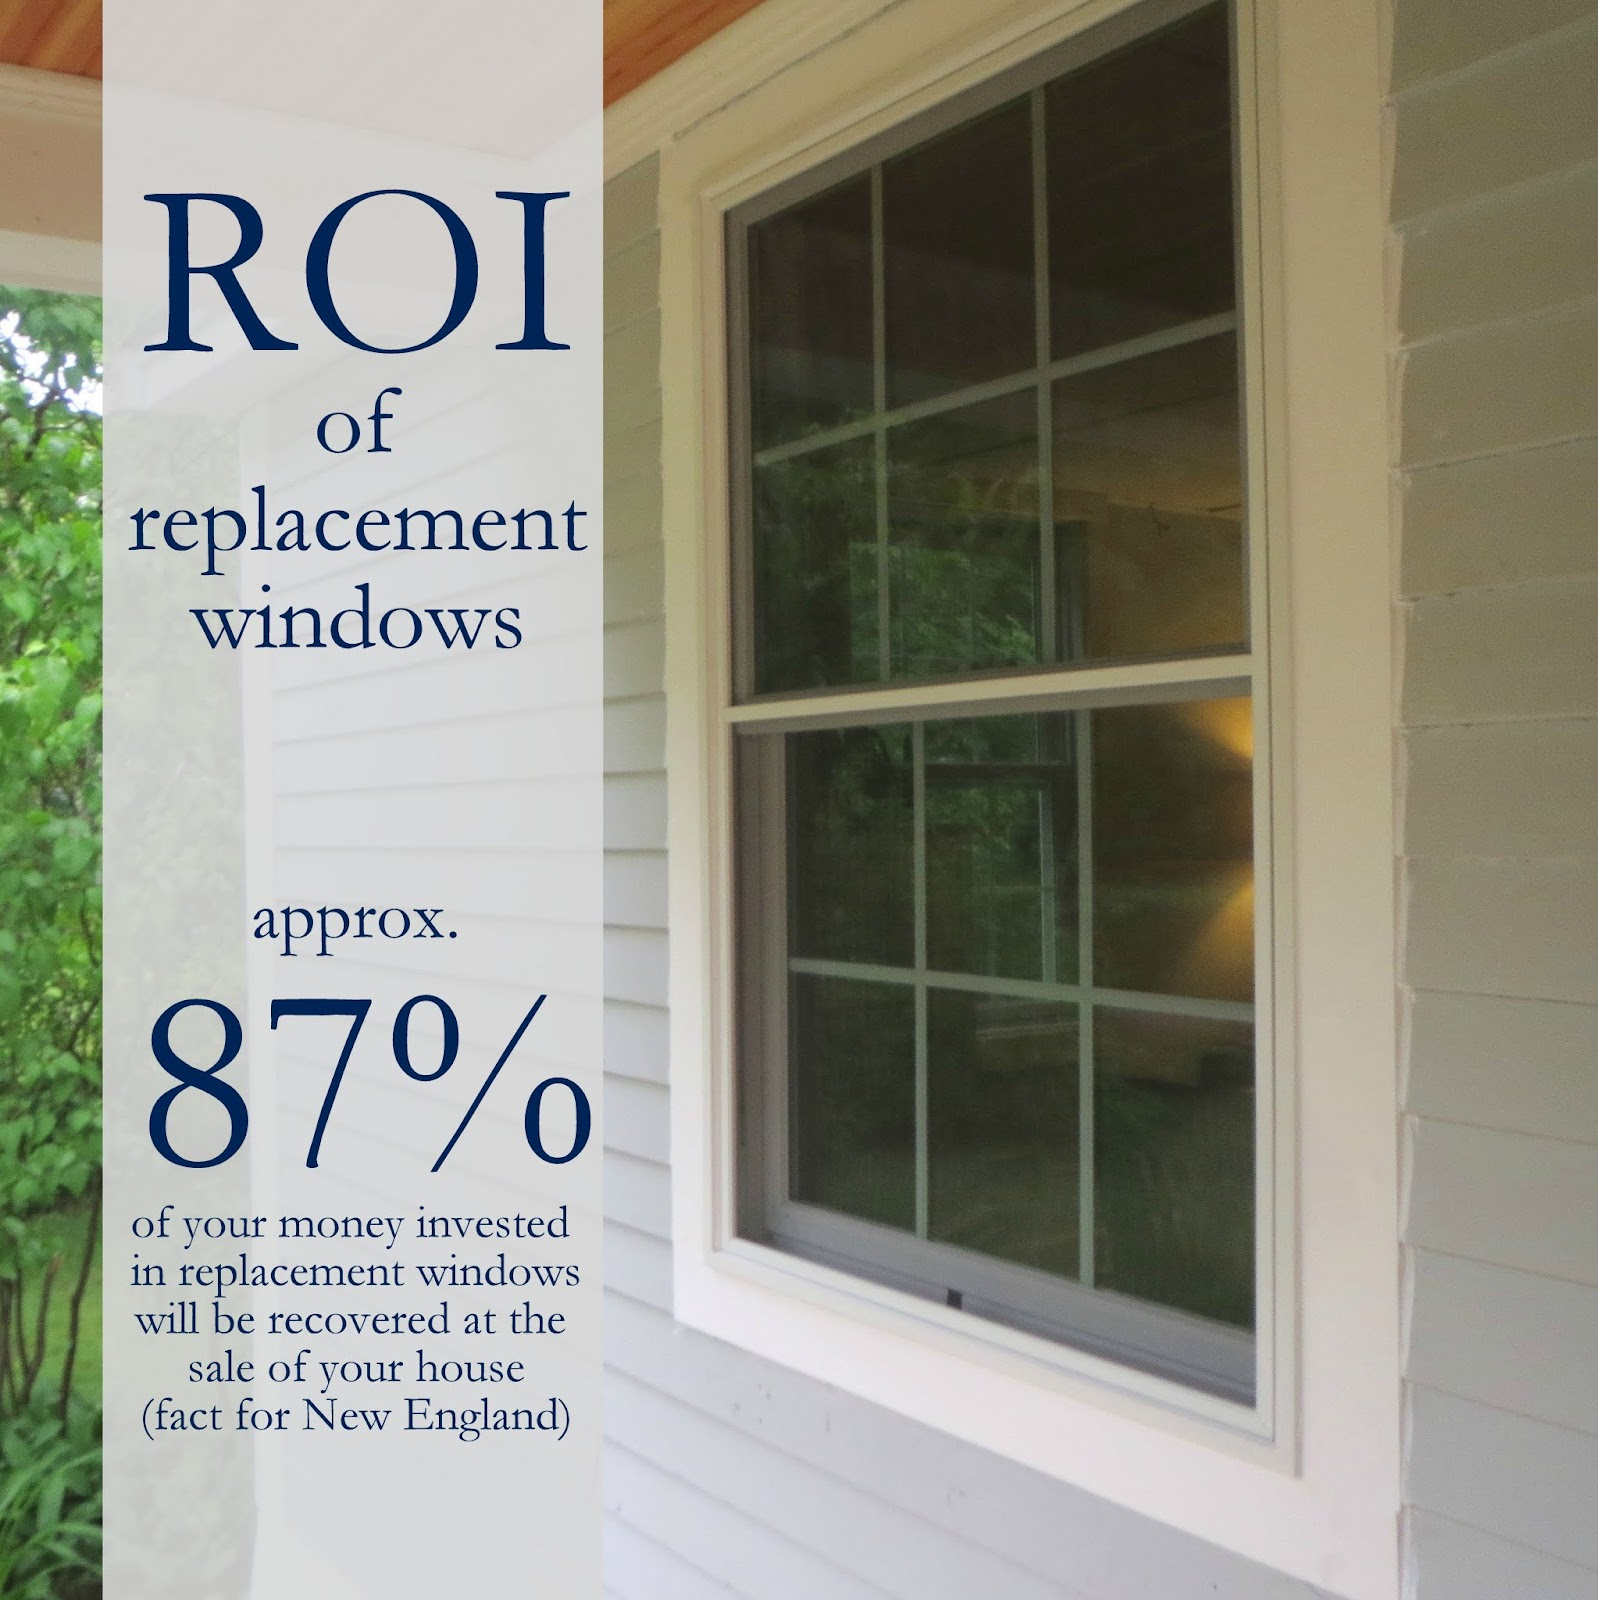 roi of replacing and lead safety